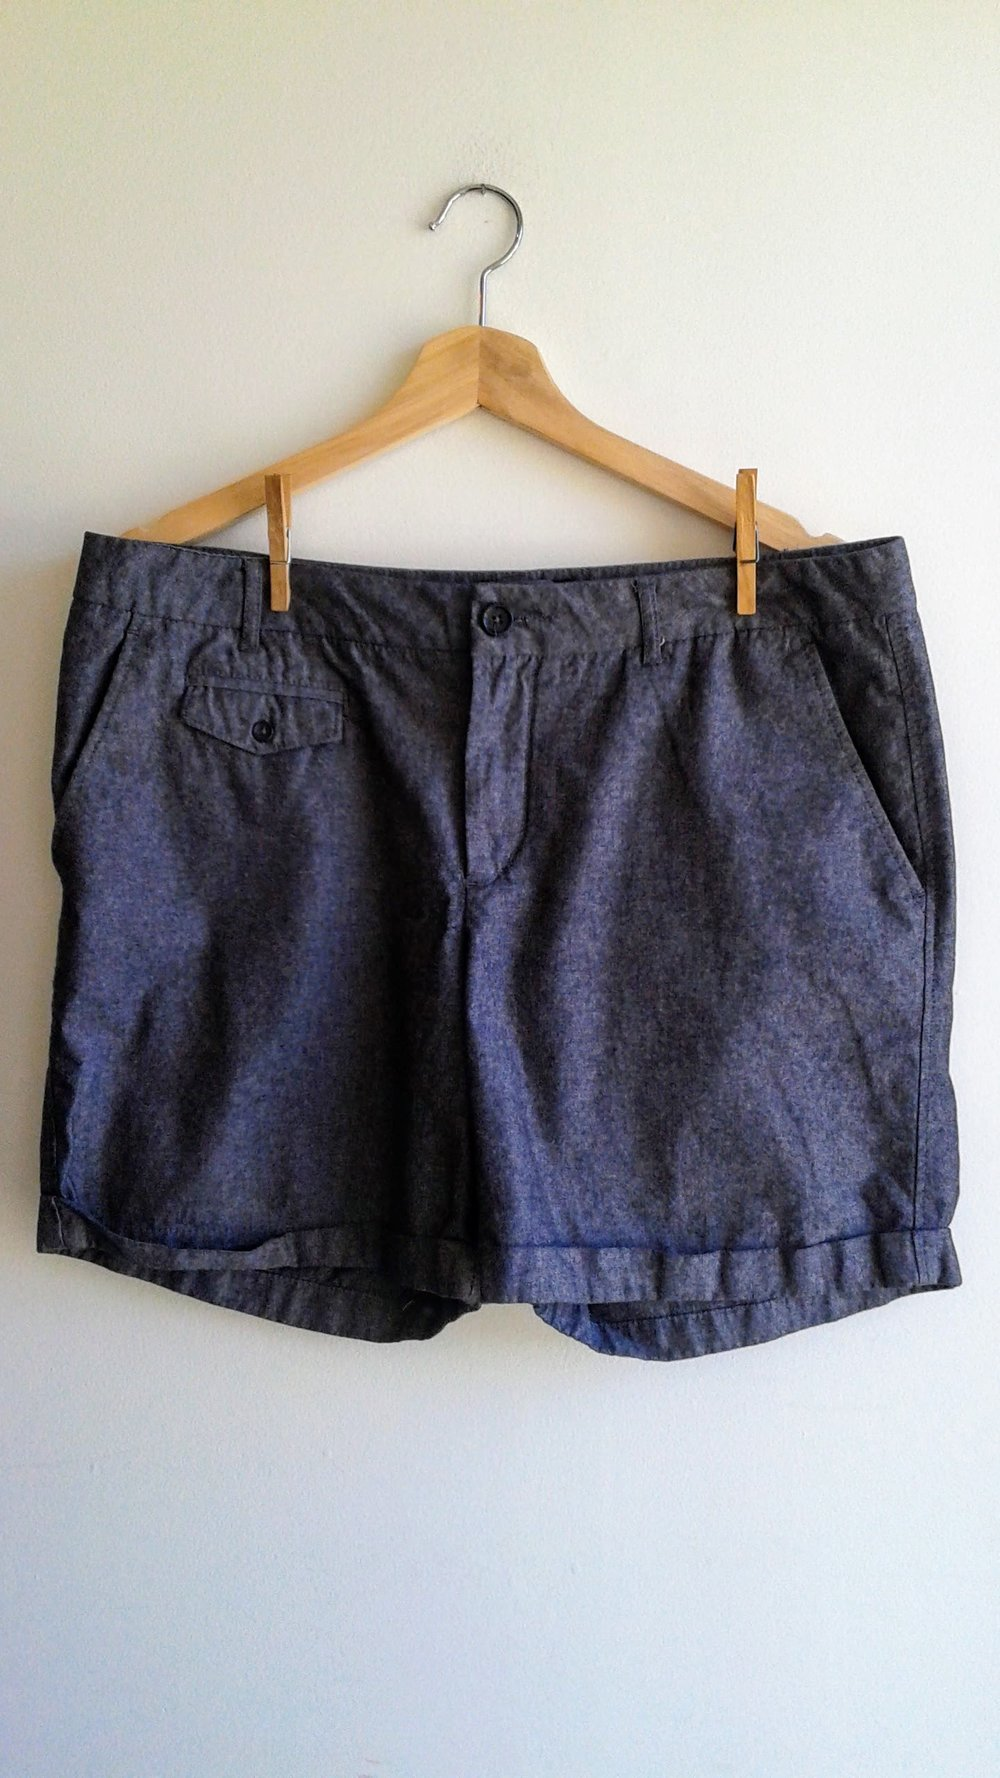 Nicole Miller  shorts; S10, $18